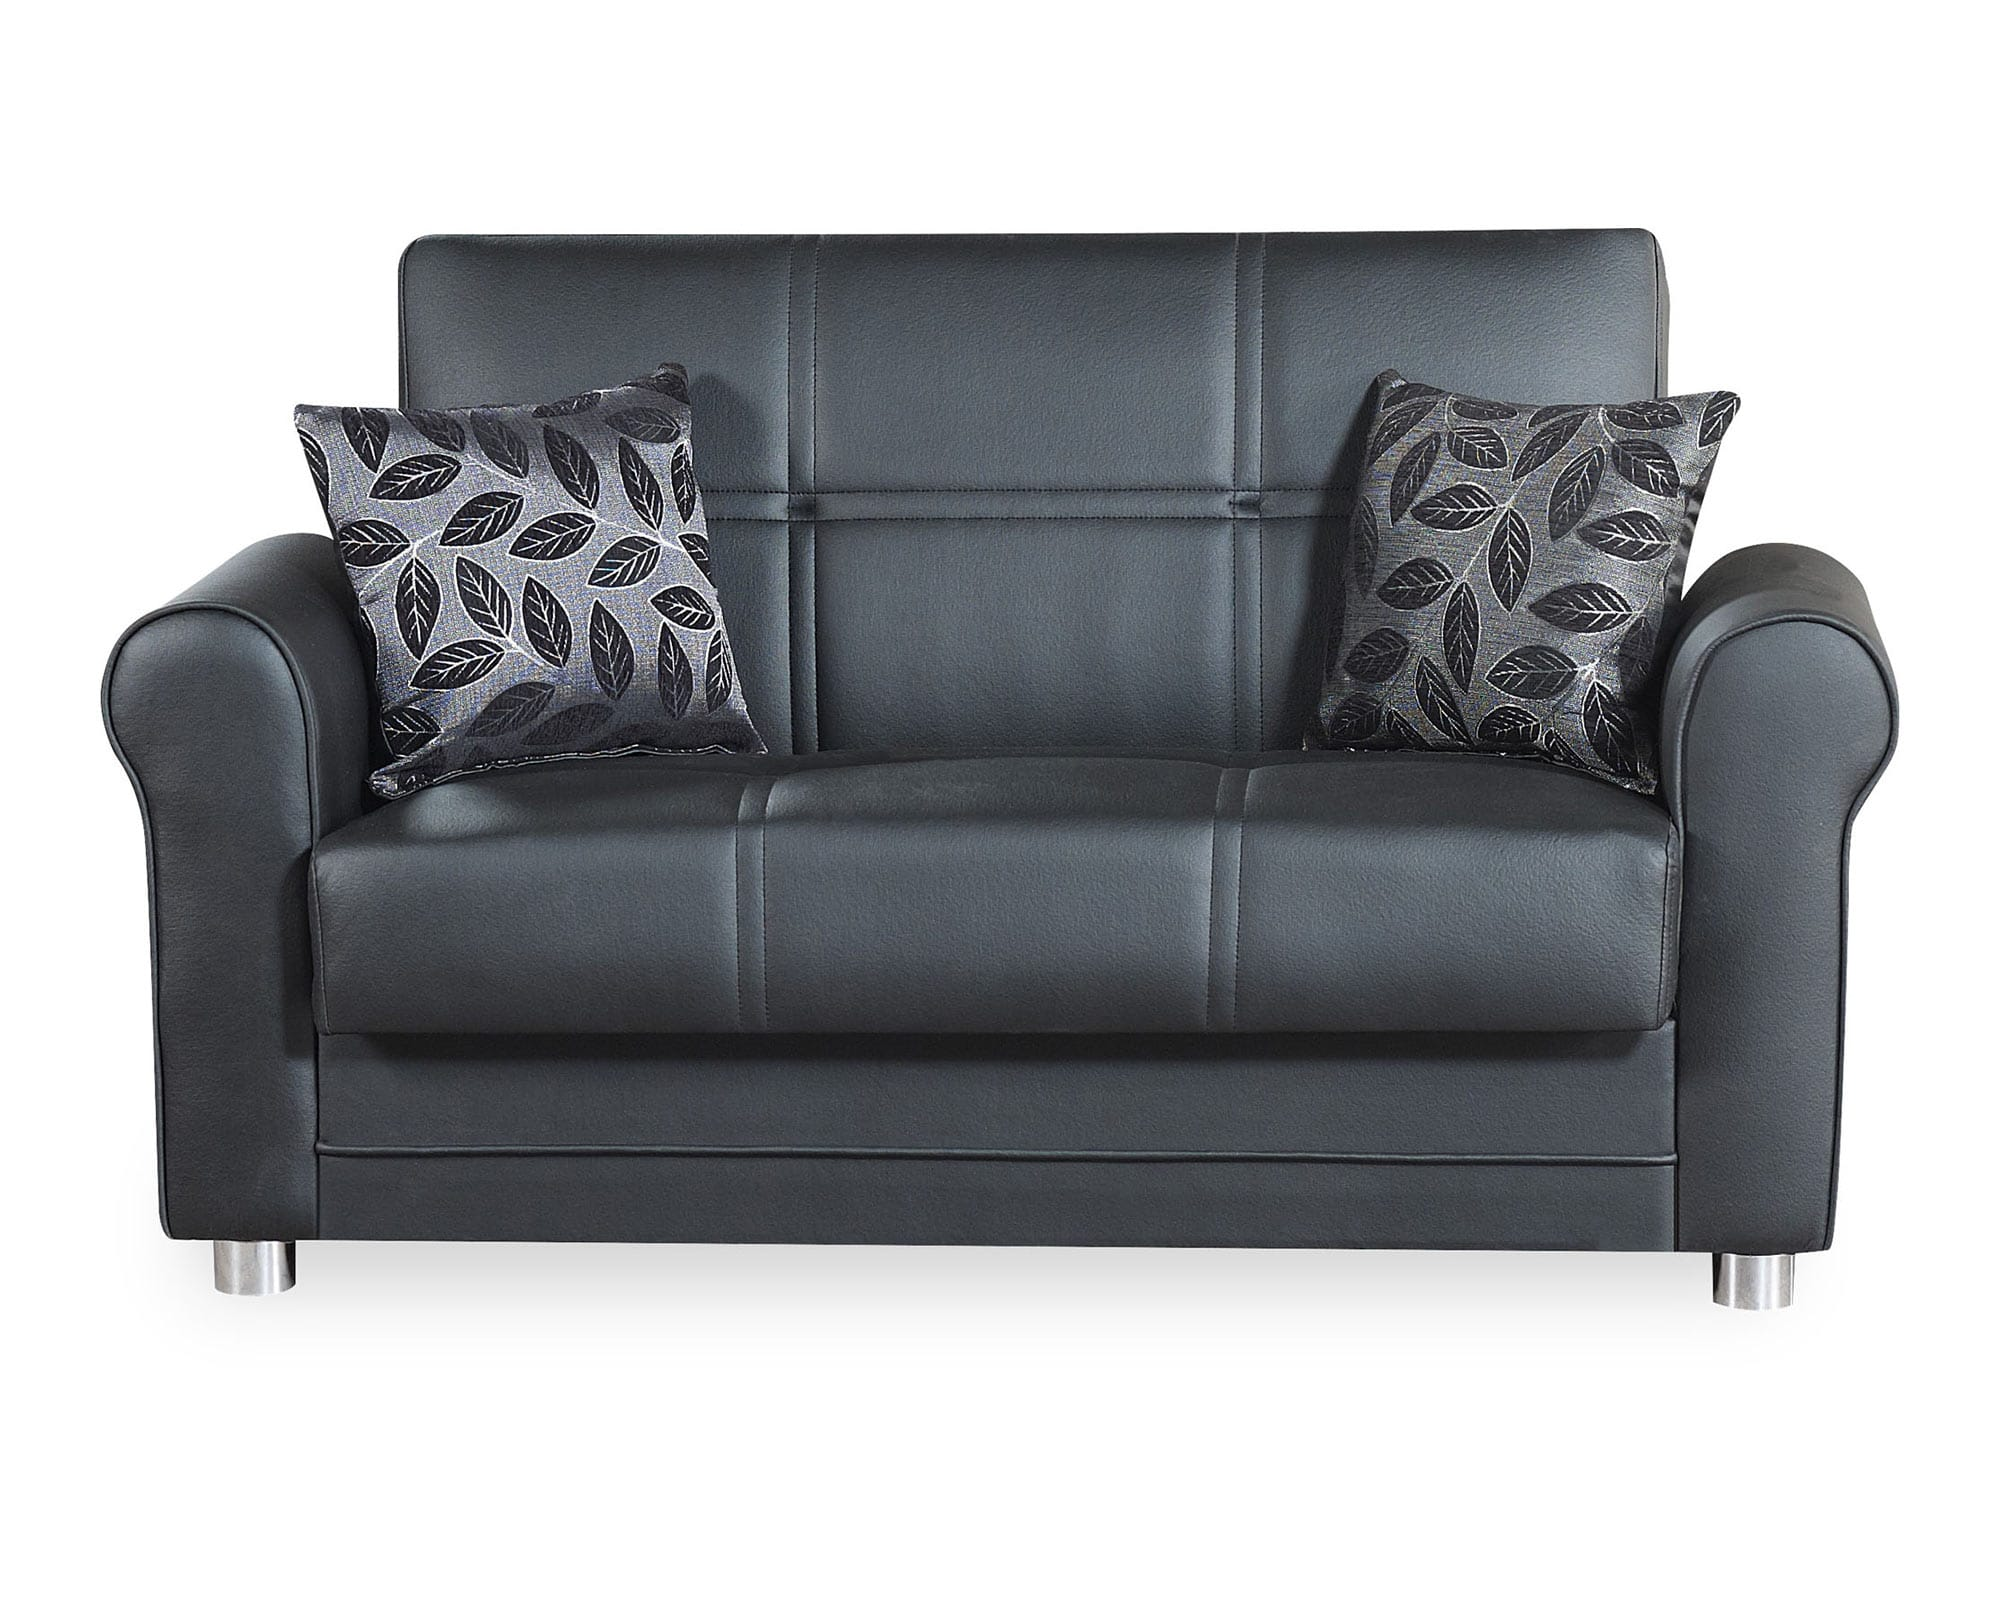 Phenomenal Avalon Plus Black Pu Leather Convertible Loveseat By Casamode Pabps2019 Chair Design Images Pabps2019Com